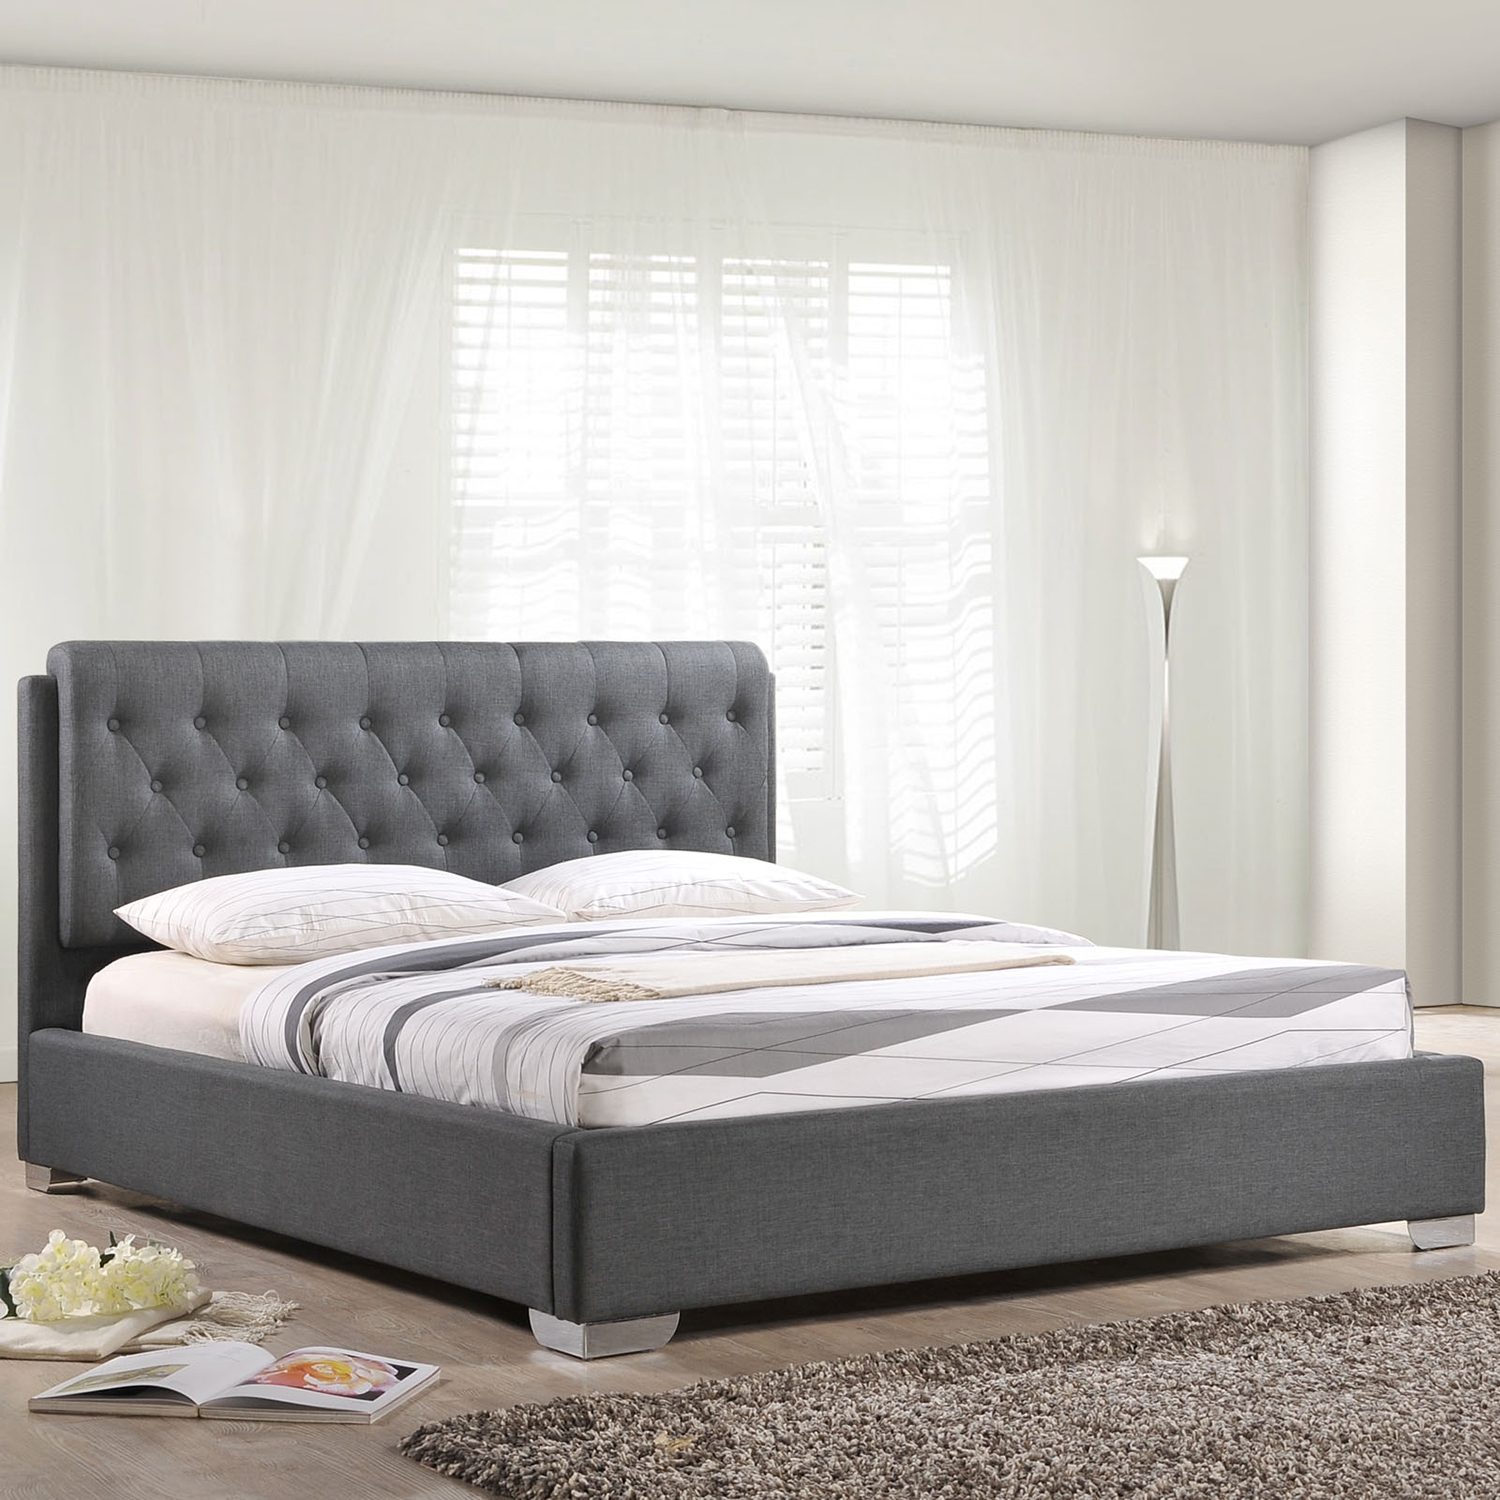 Amelia Fabric Bed - Button Tufted, Gray - EEI-MOD-5-GRY-SET-CAITLIN